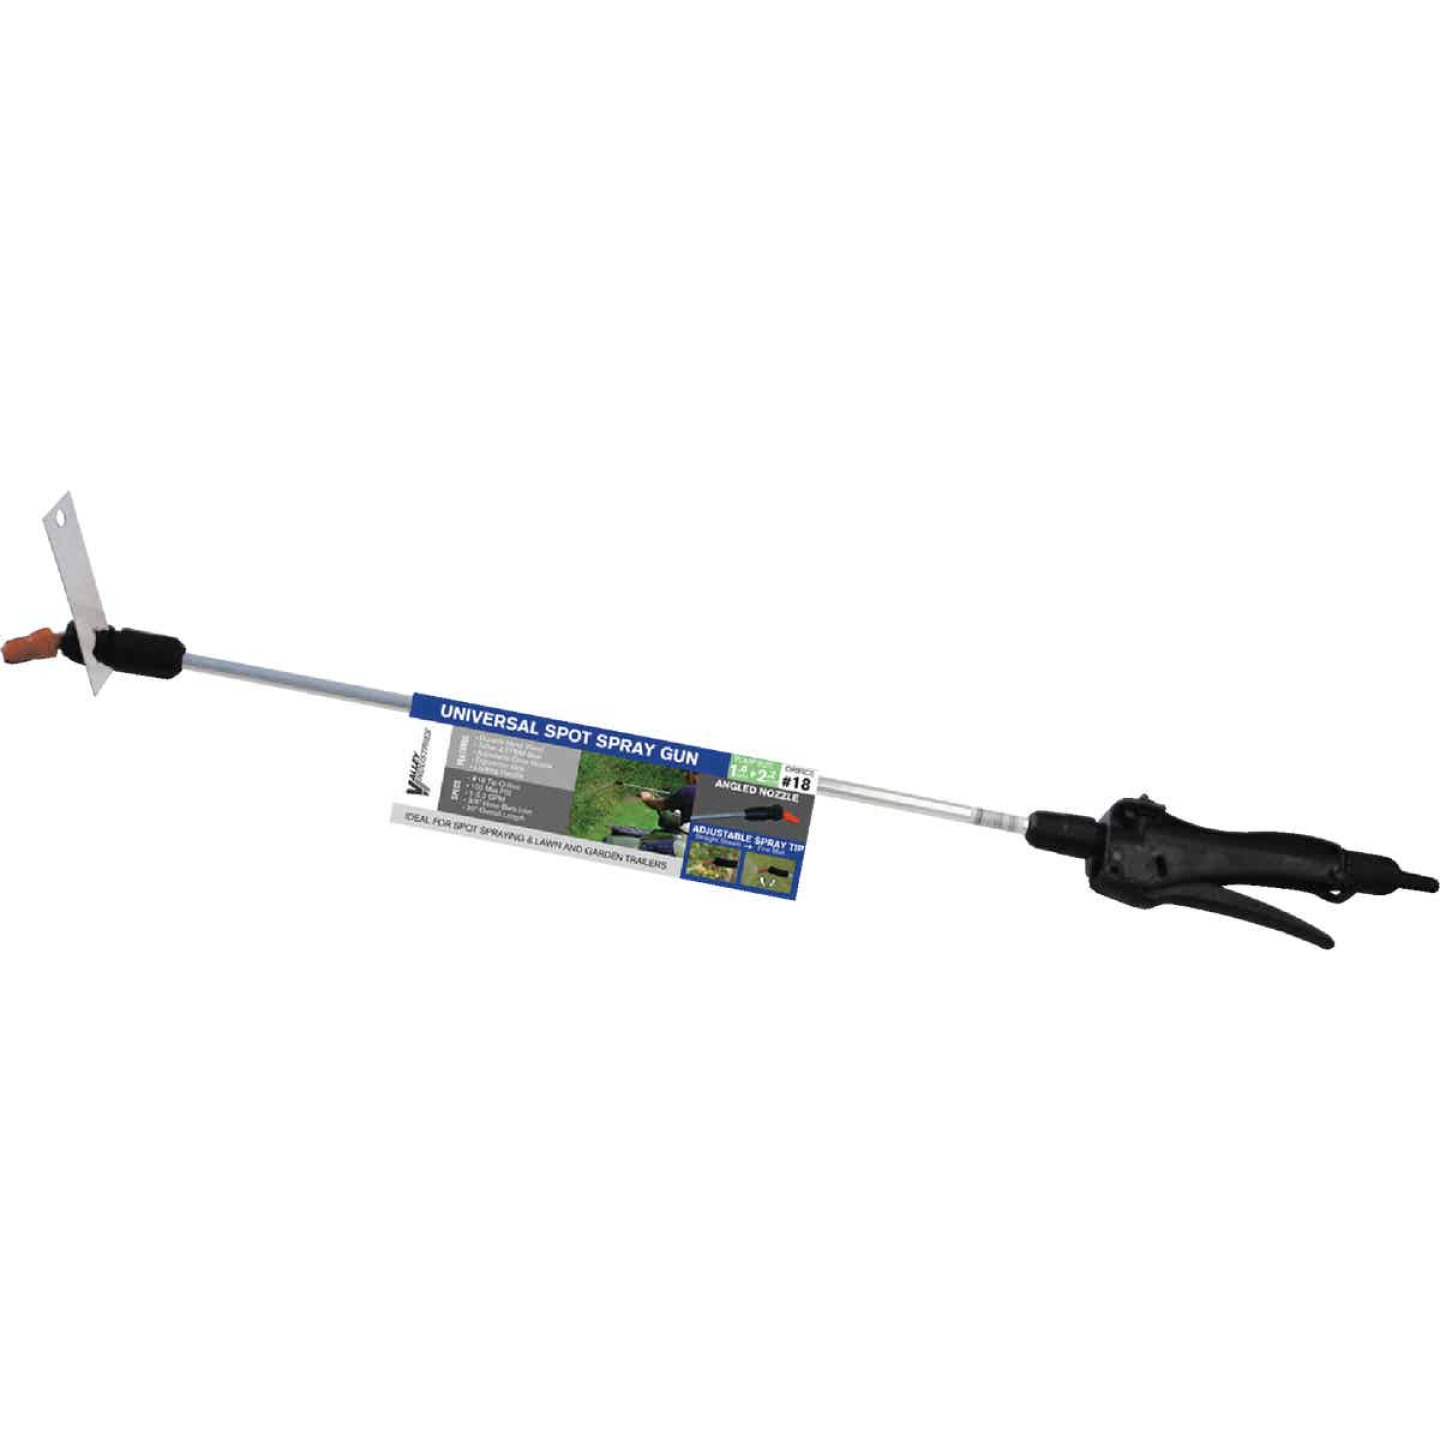 Valley Industries 30 In. Sprayer Wand/Gun Image 1